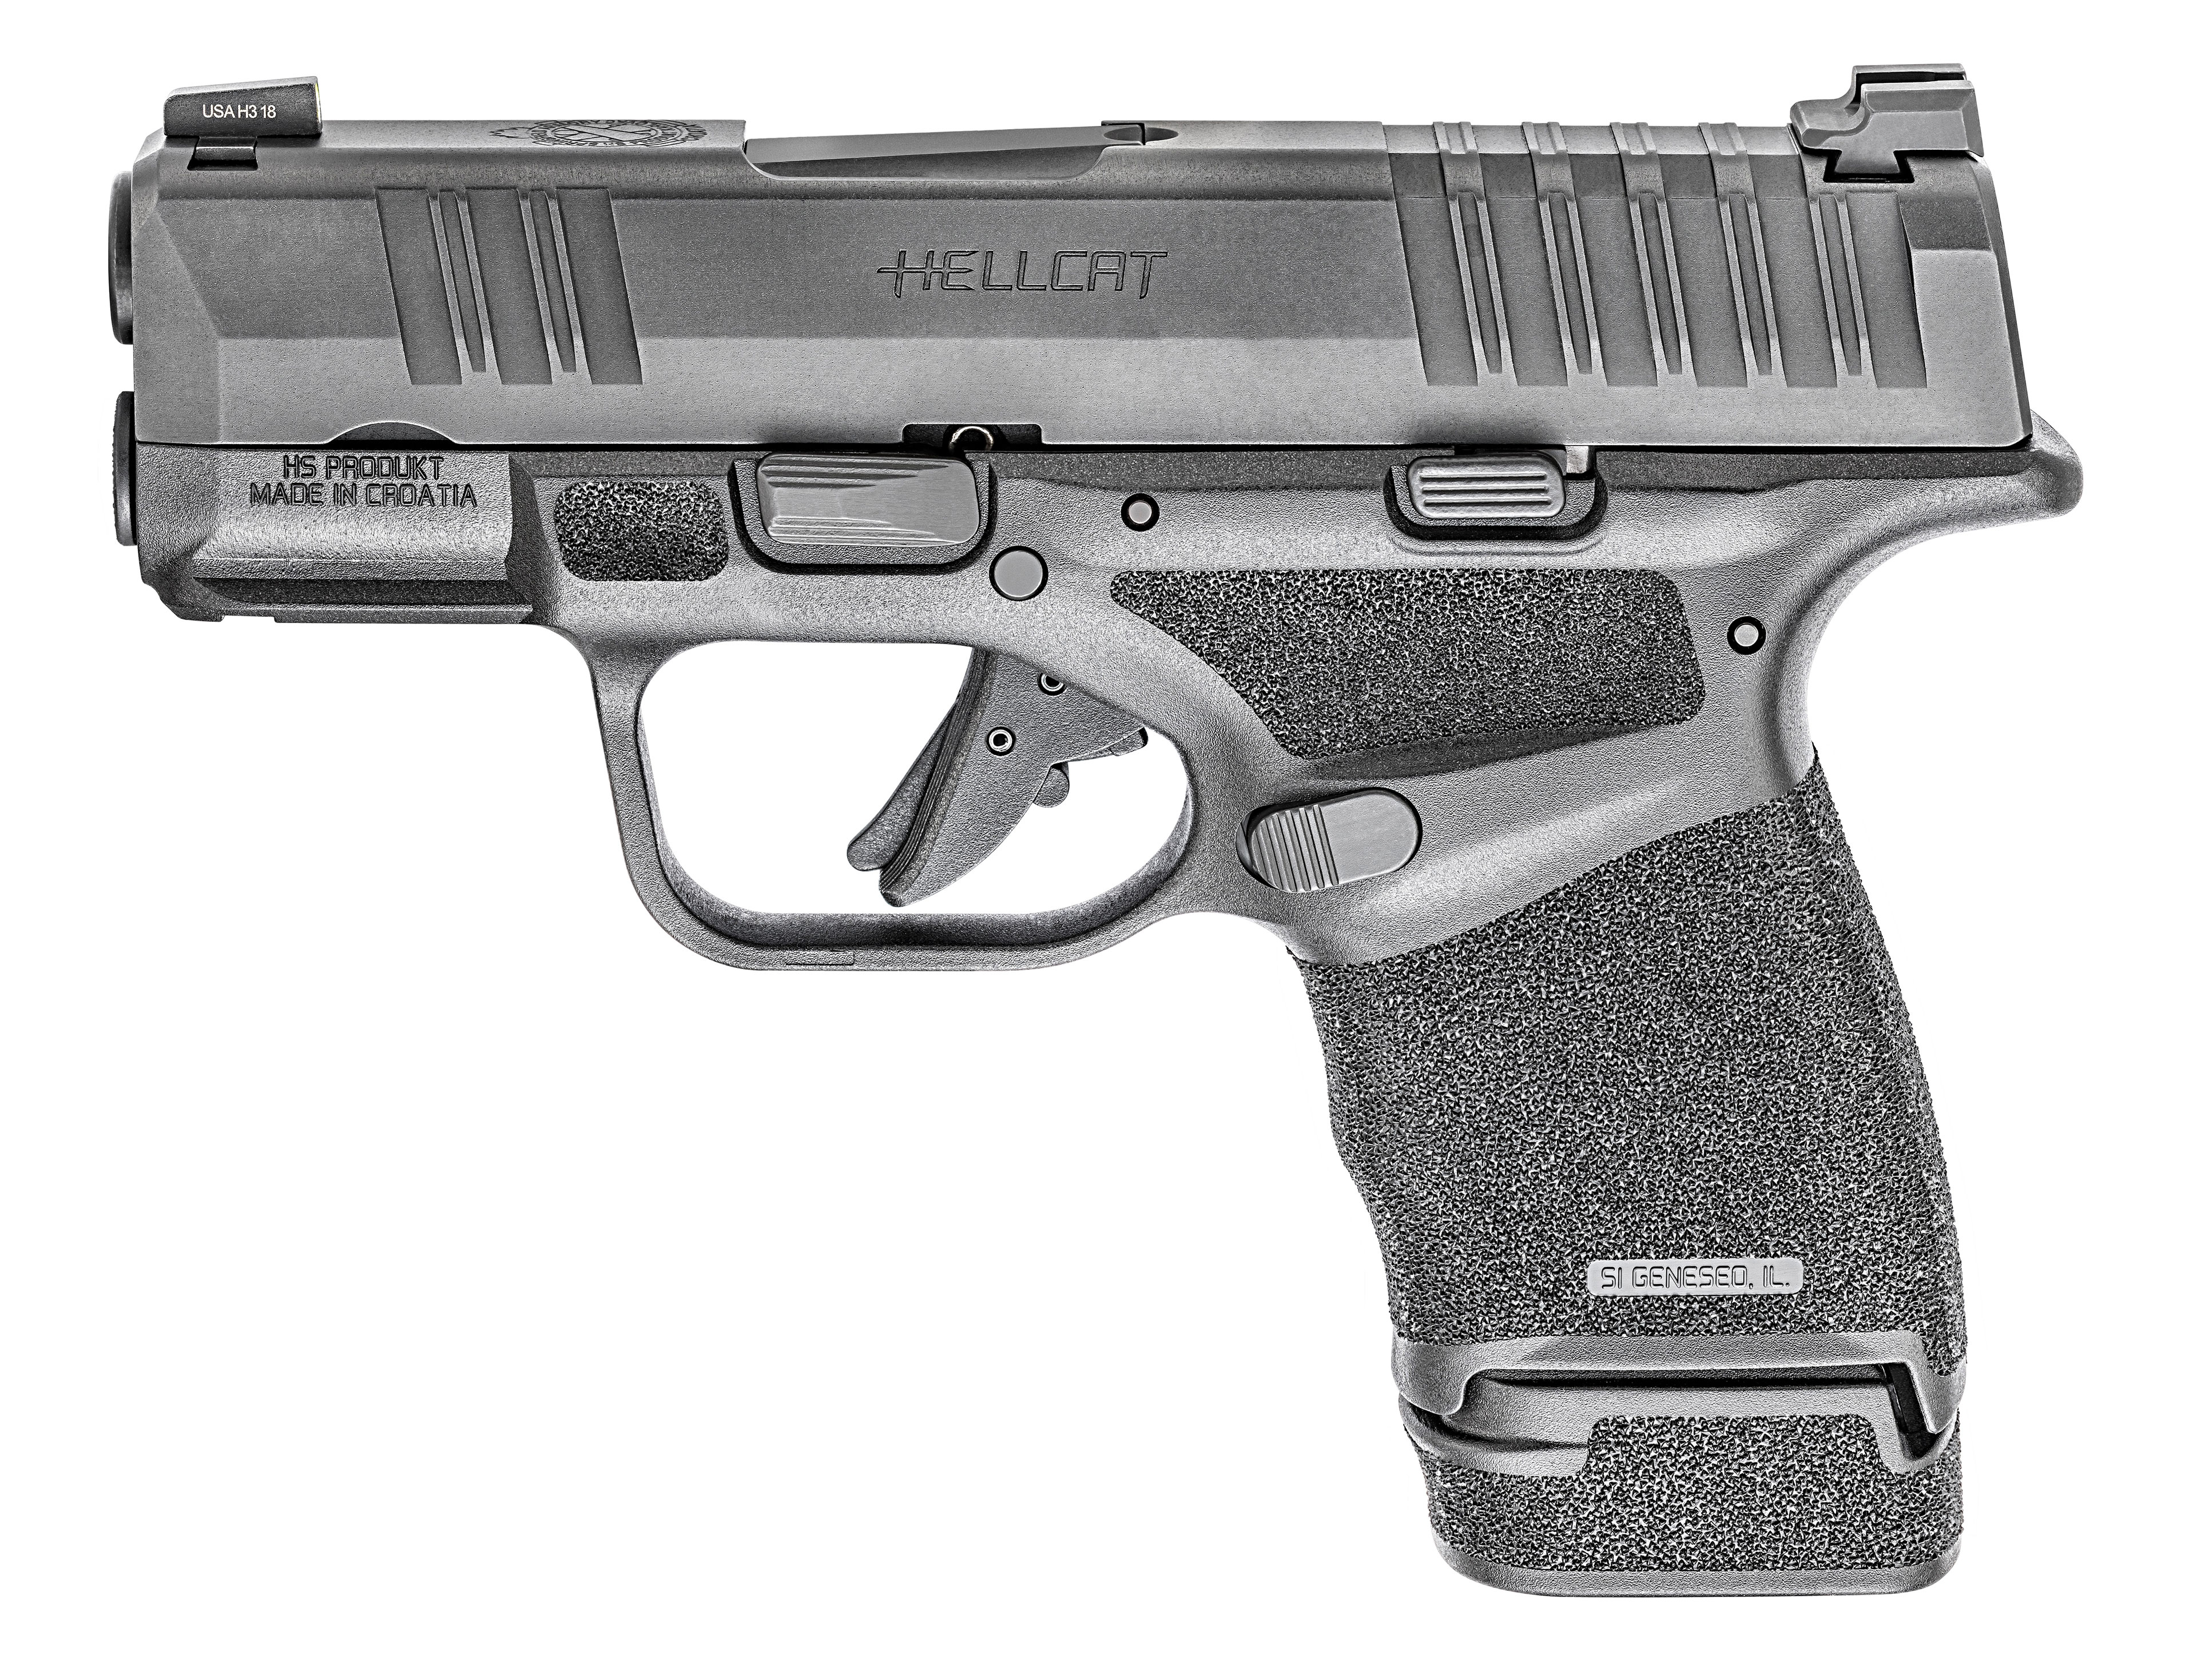 CZ, Ruger, LC9, semi-automatic, handguns, guns for self-defense, Glock, Smith & Wesson, SIG Sauer, M&P Shield, glock 26, Shield 9mm, P365, Walther, Taurus, Concealed Carry, gun sales, hybrid holsters, edc, everyday carry, best guns for, best holster, Glock 26, Springfield Armory, Springfield Hellcat